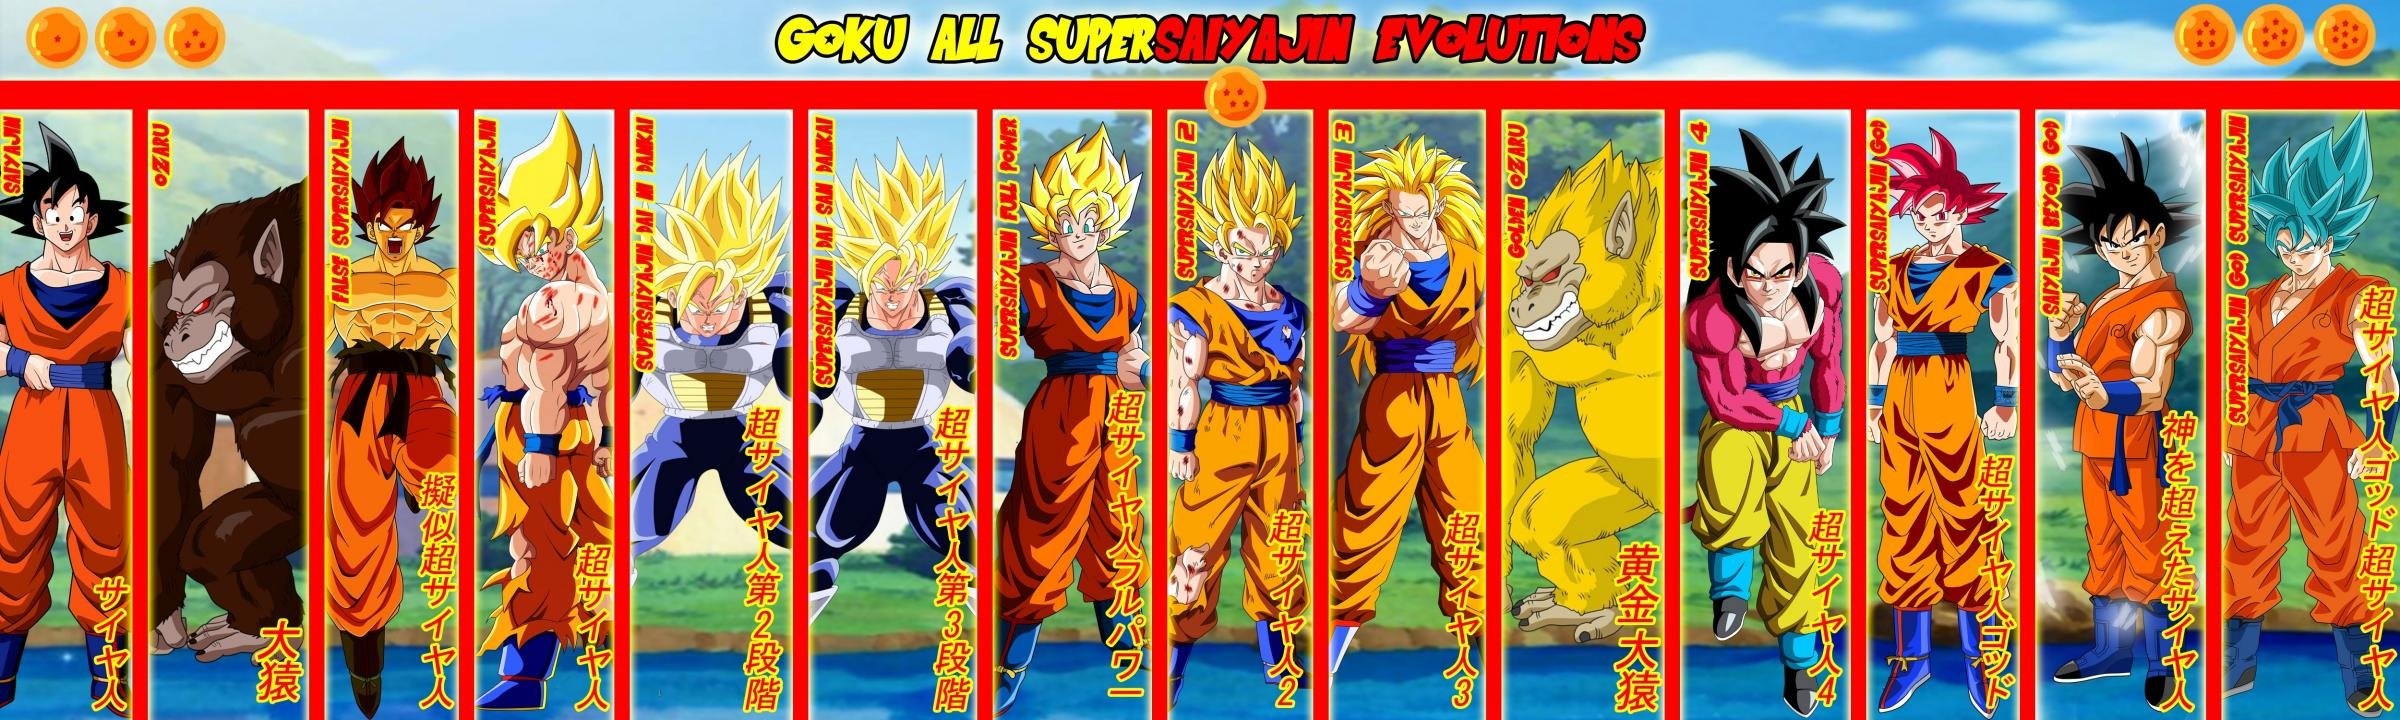 Download dual screen 2400x720 Goku computer background ID:462107 for free